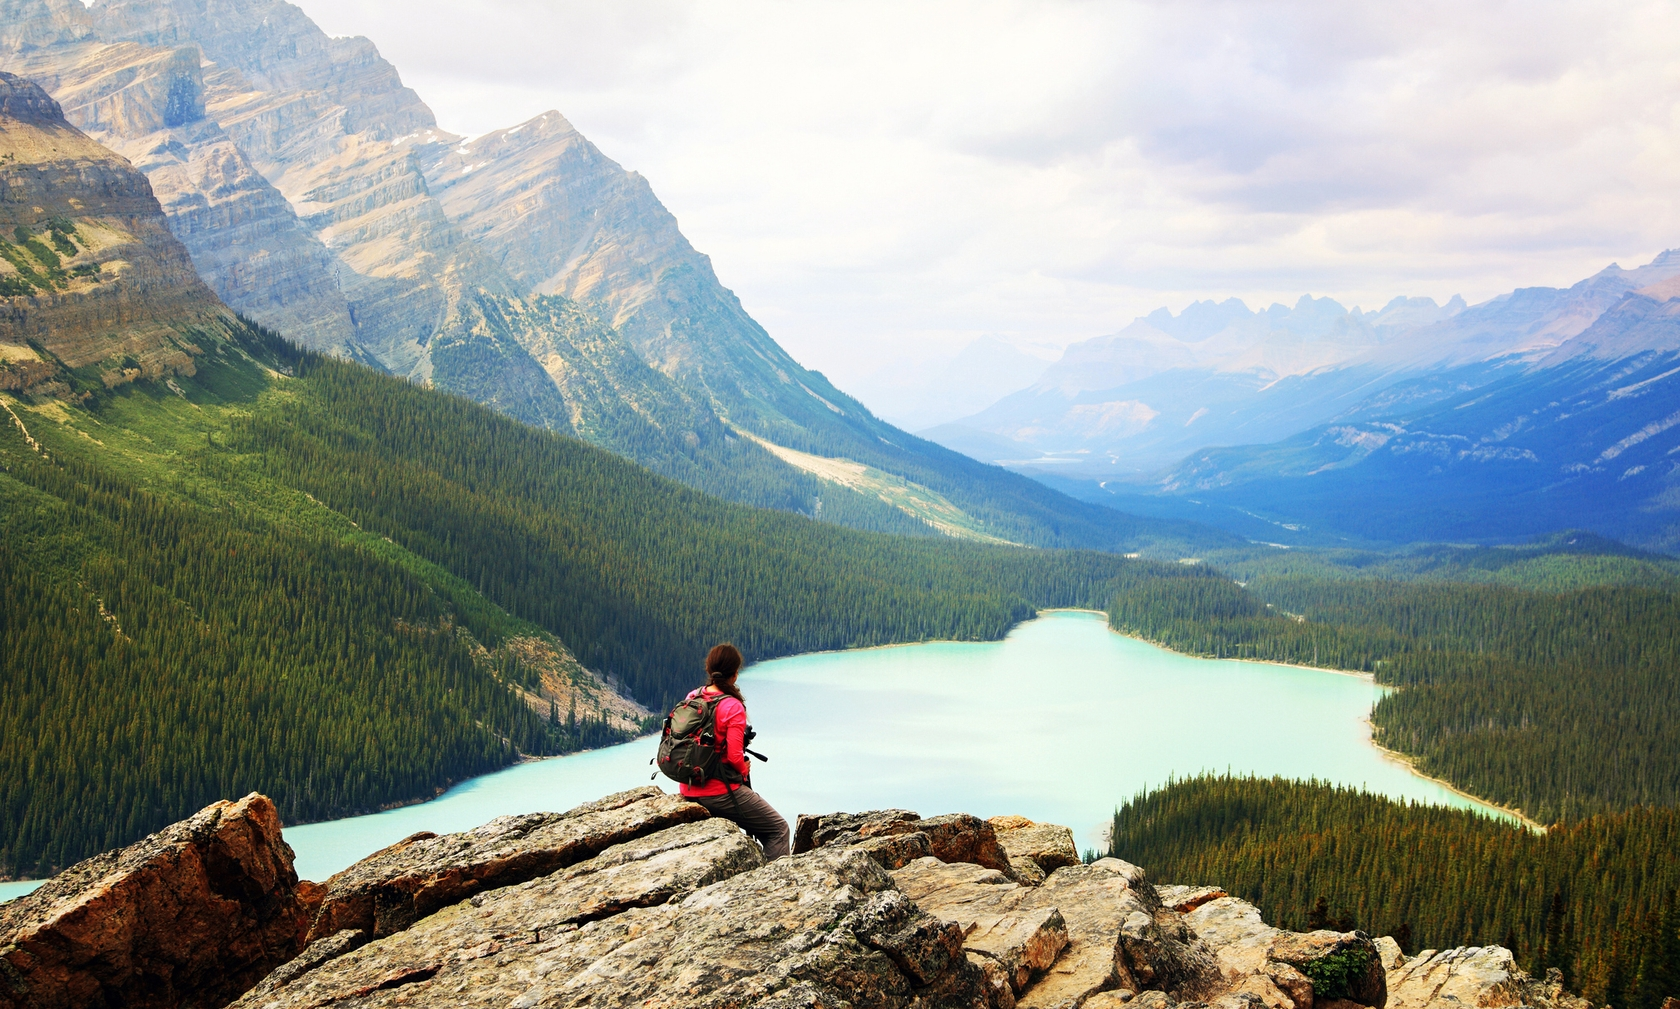 Vacation rentals in Banff